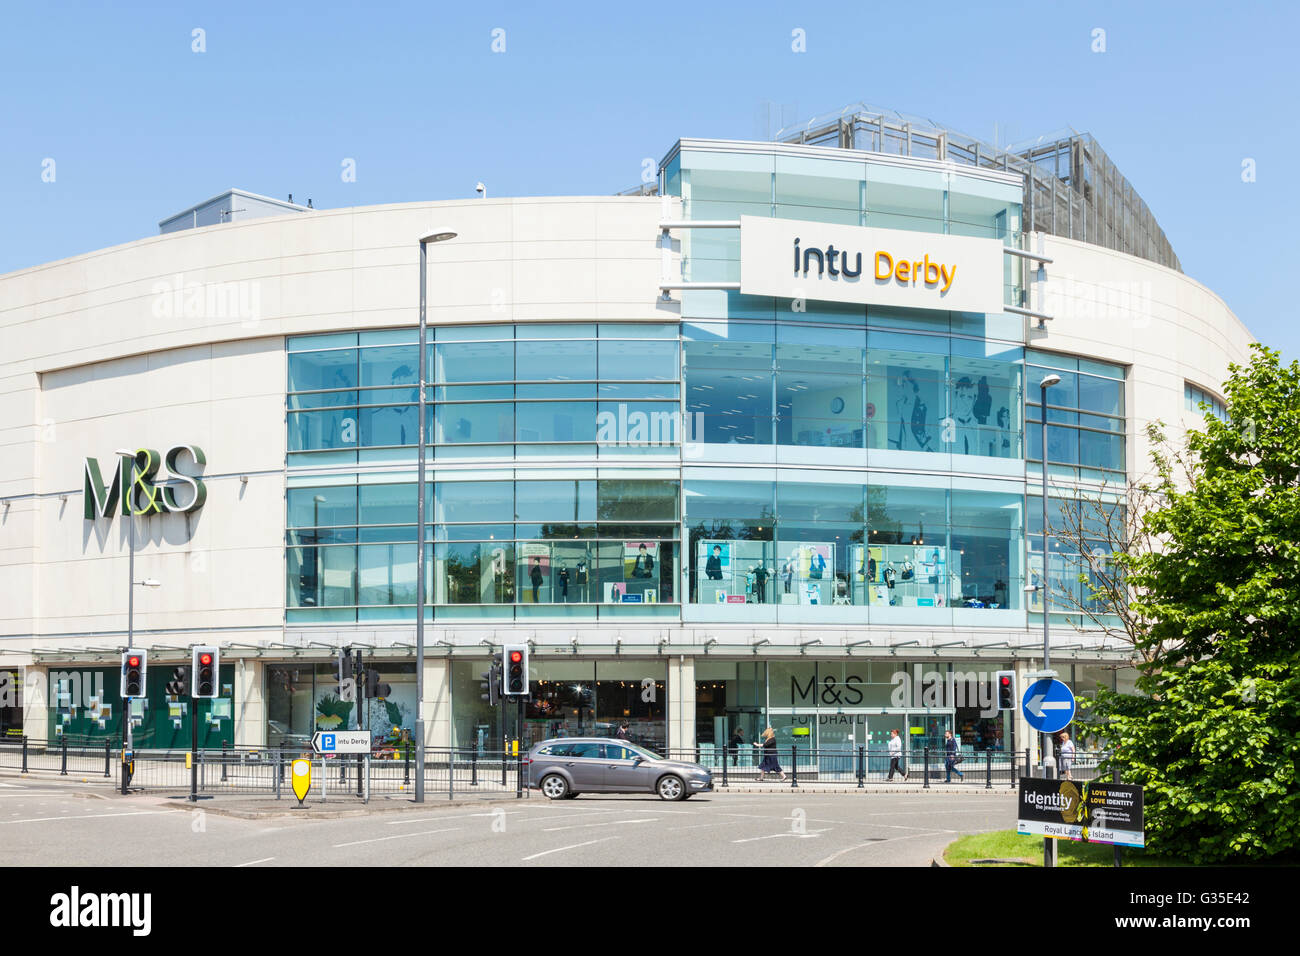 intu Derby shopping centre, Derby, England, UK - Stock Image